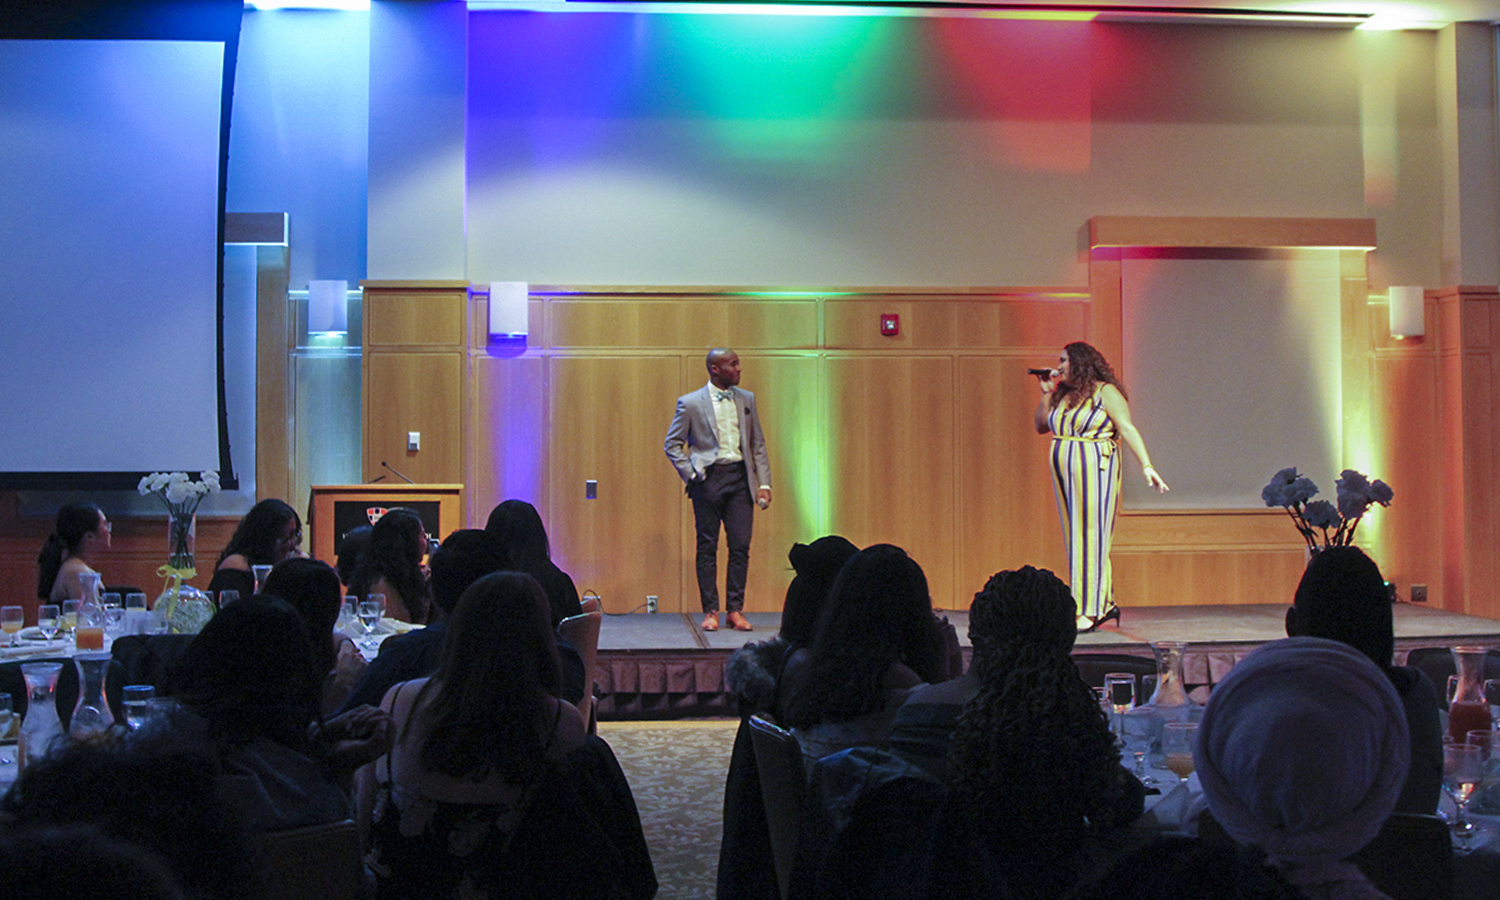 MC's at the Heritage Dinner, hosted by the Latin American Association and the LGBTQ+ Resource Center, Marcel Johnson '19 and Sheila Valiz '20 warm up the crowd.